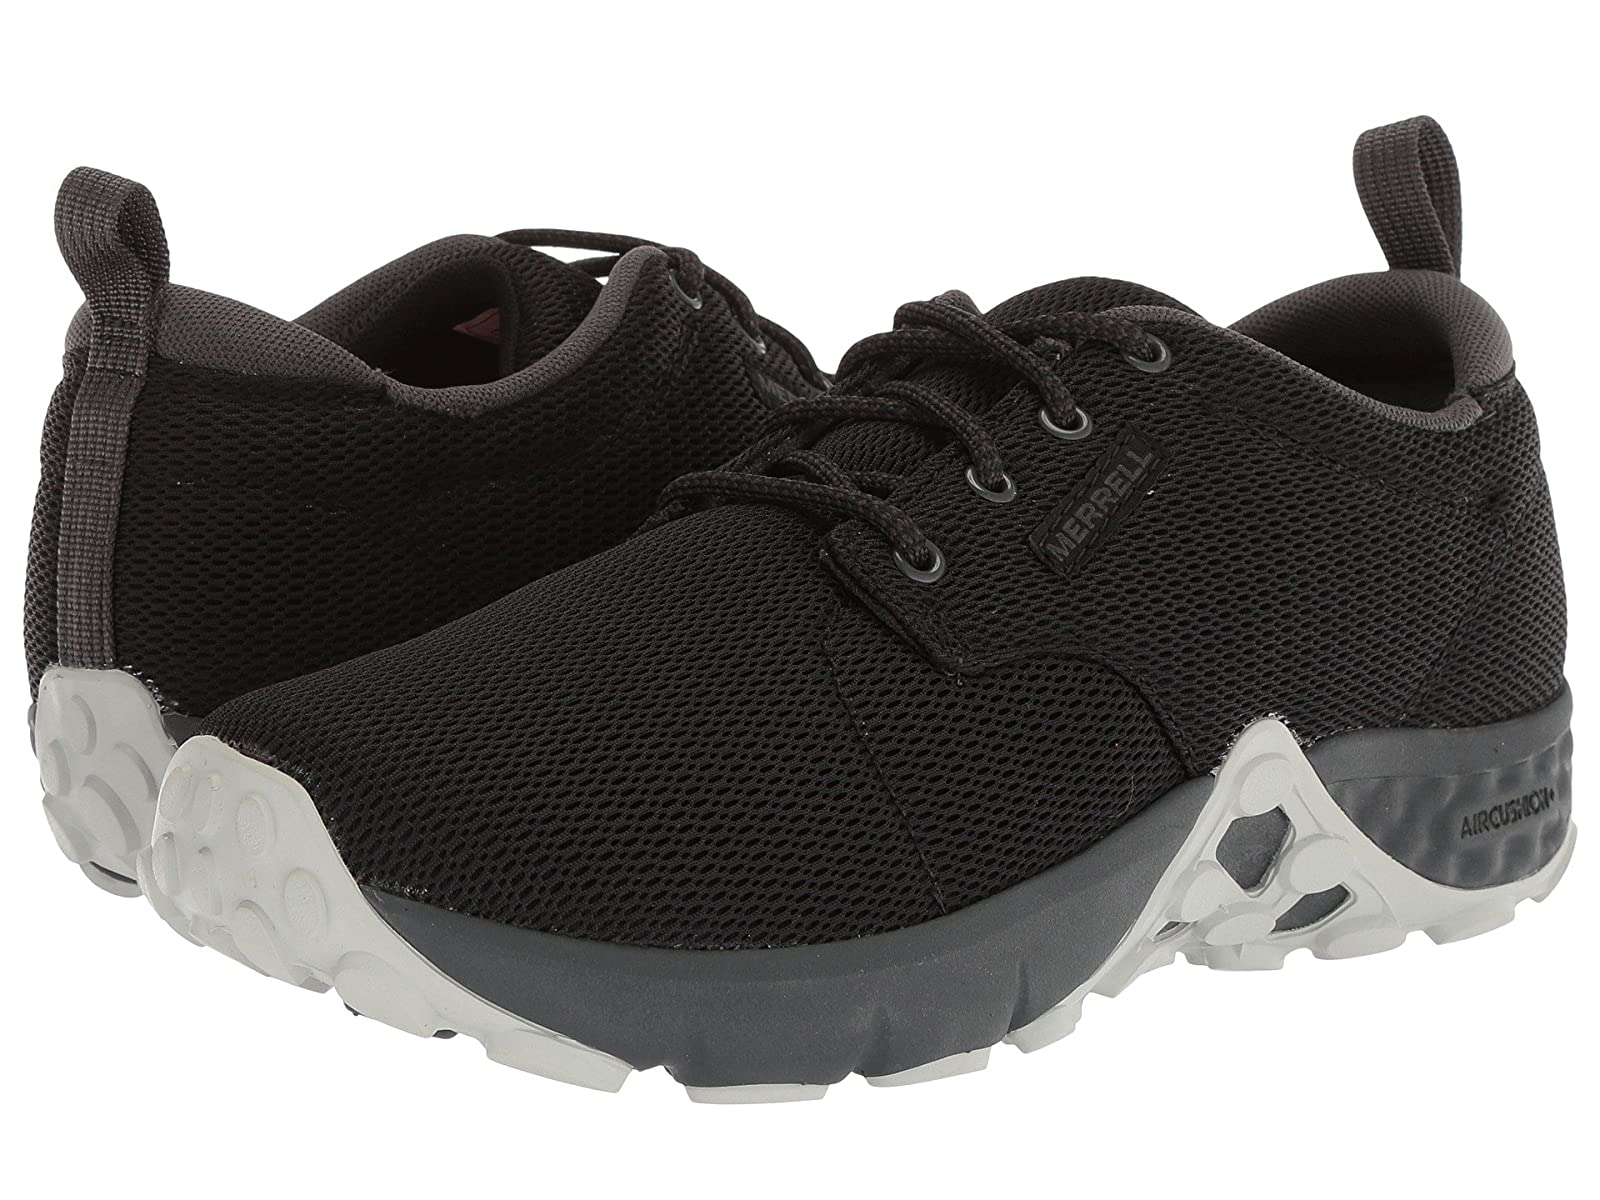 Merrell Jungle Lace Vent AC+Cheap and distinctive eye-catching shoes